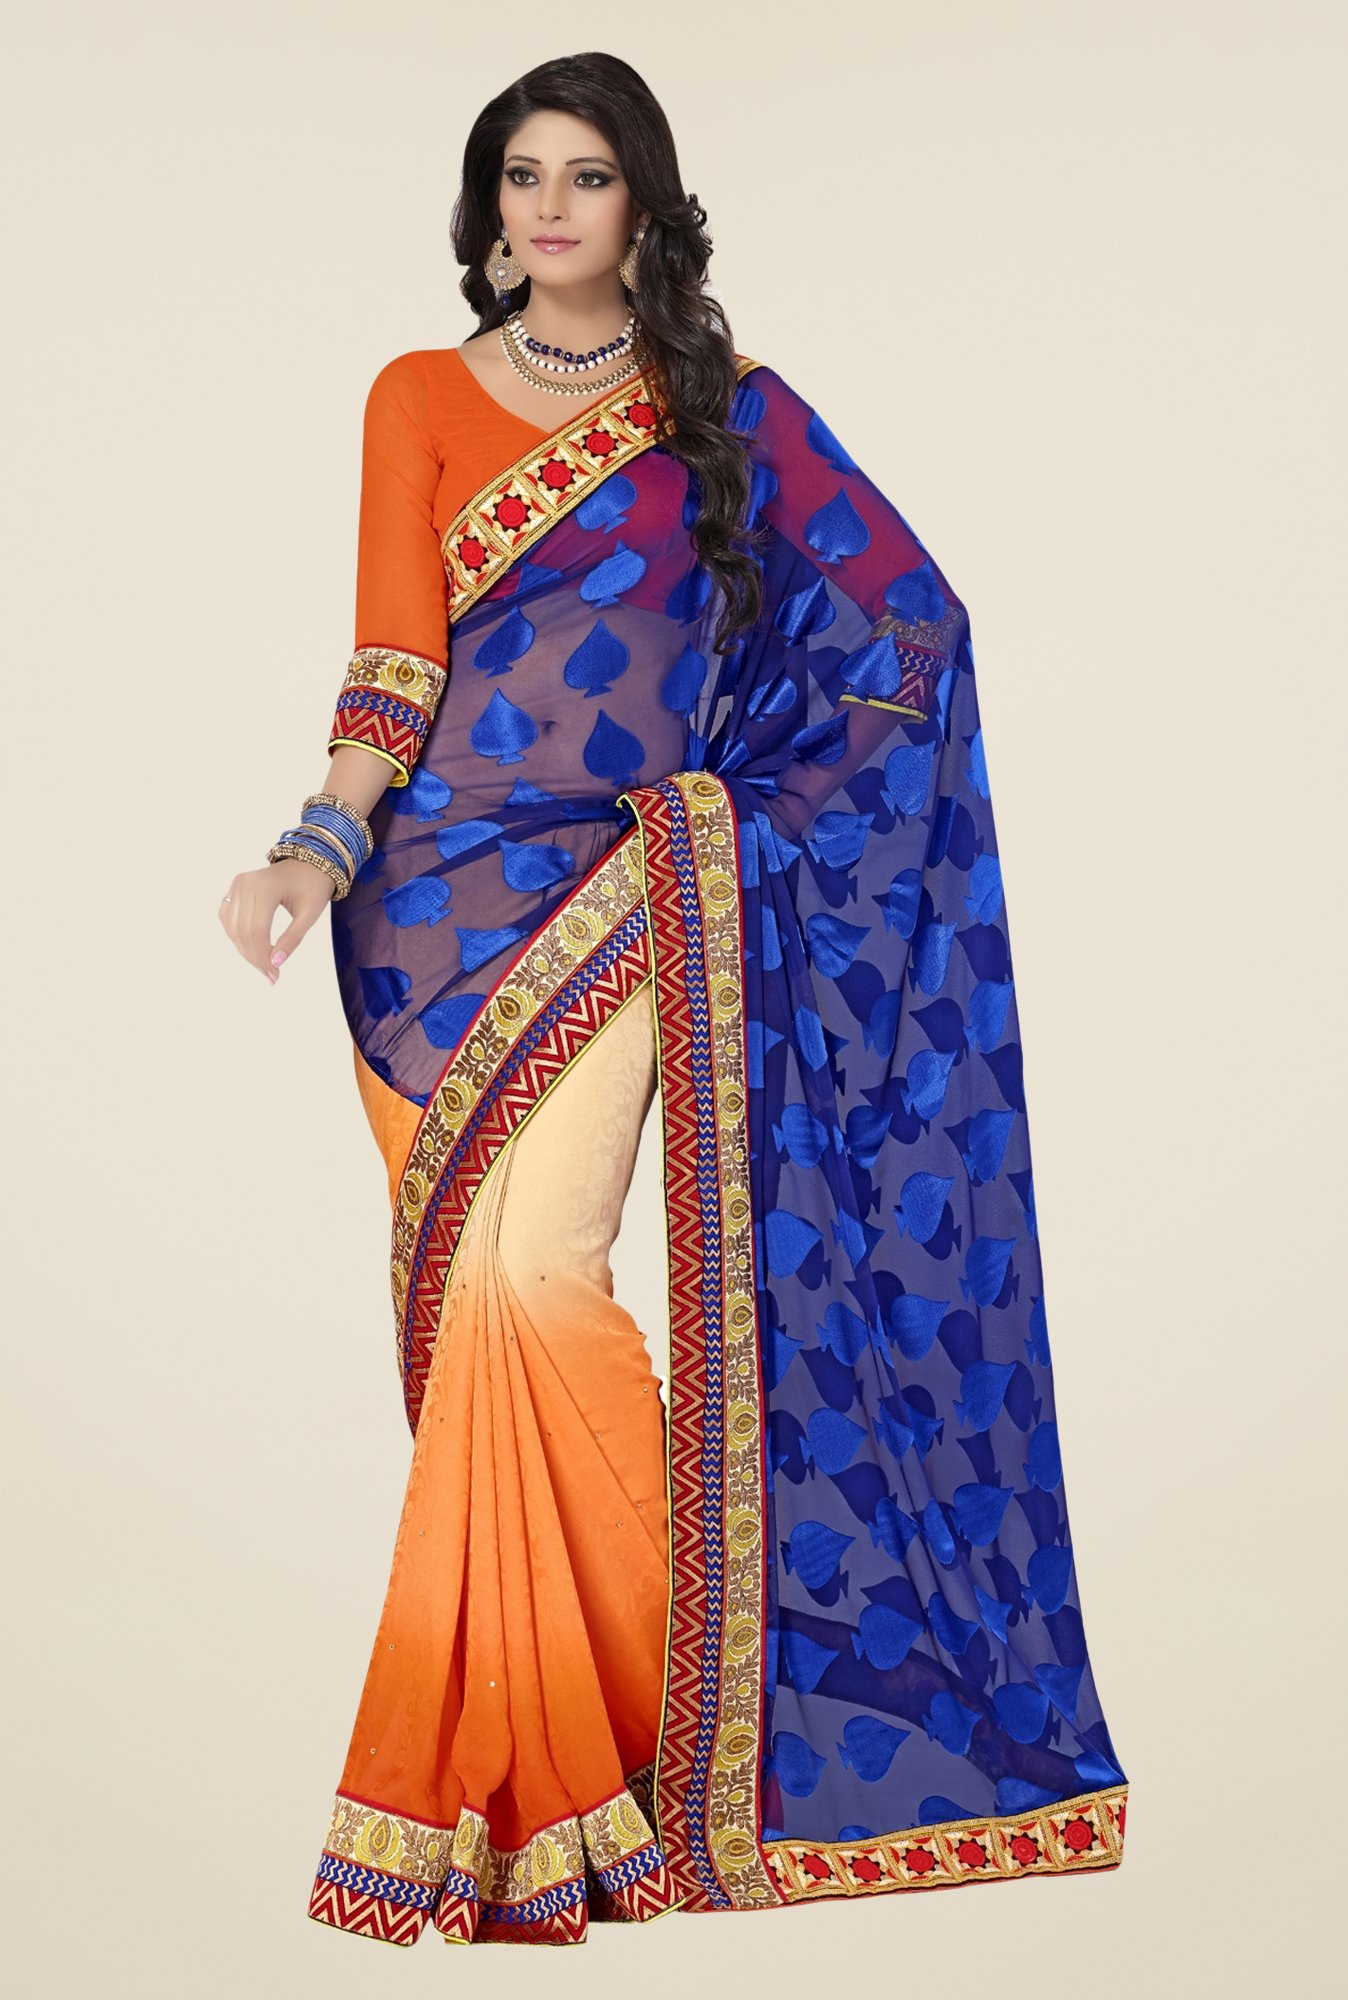 Triveni Orange & Blue Printed Brasso Saree